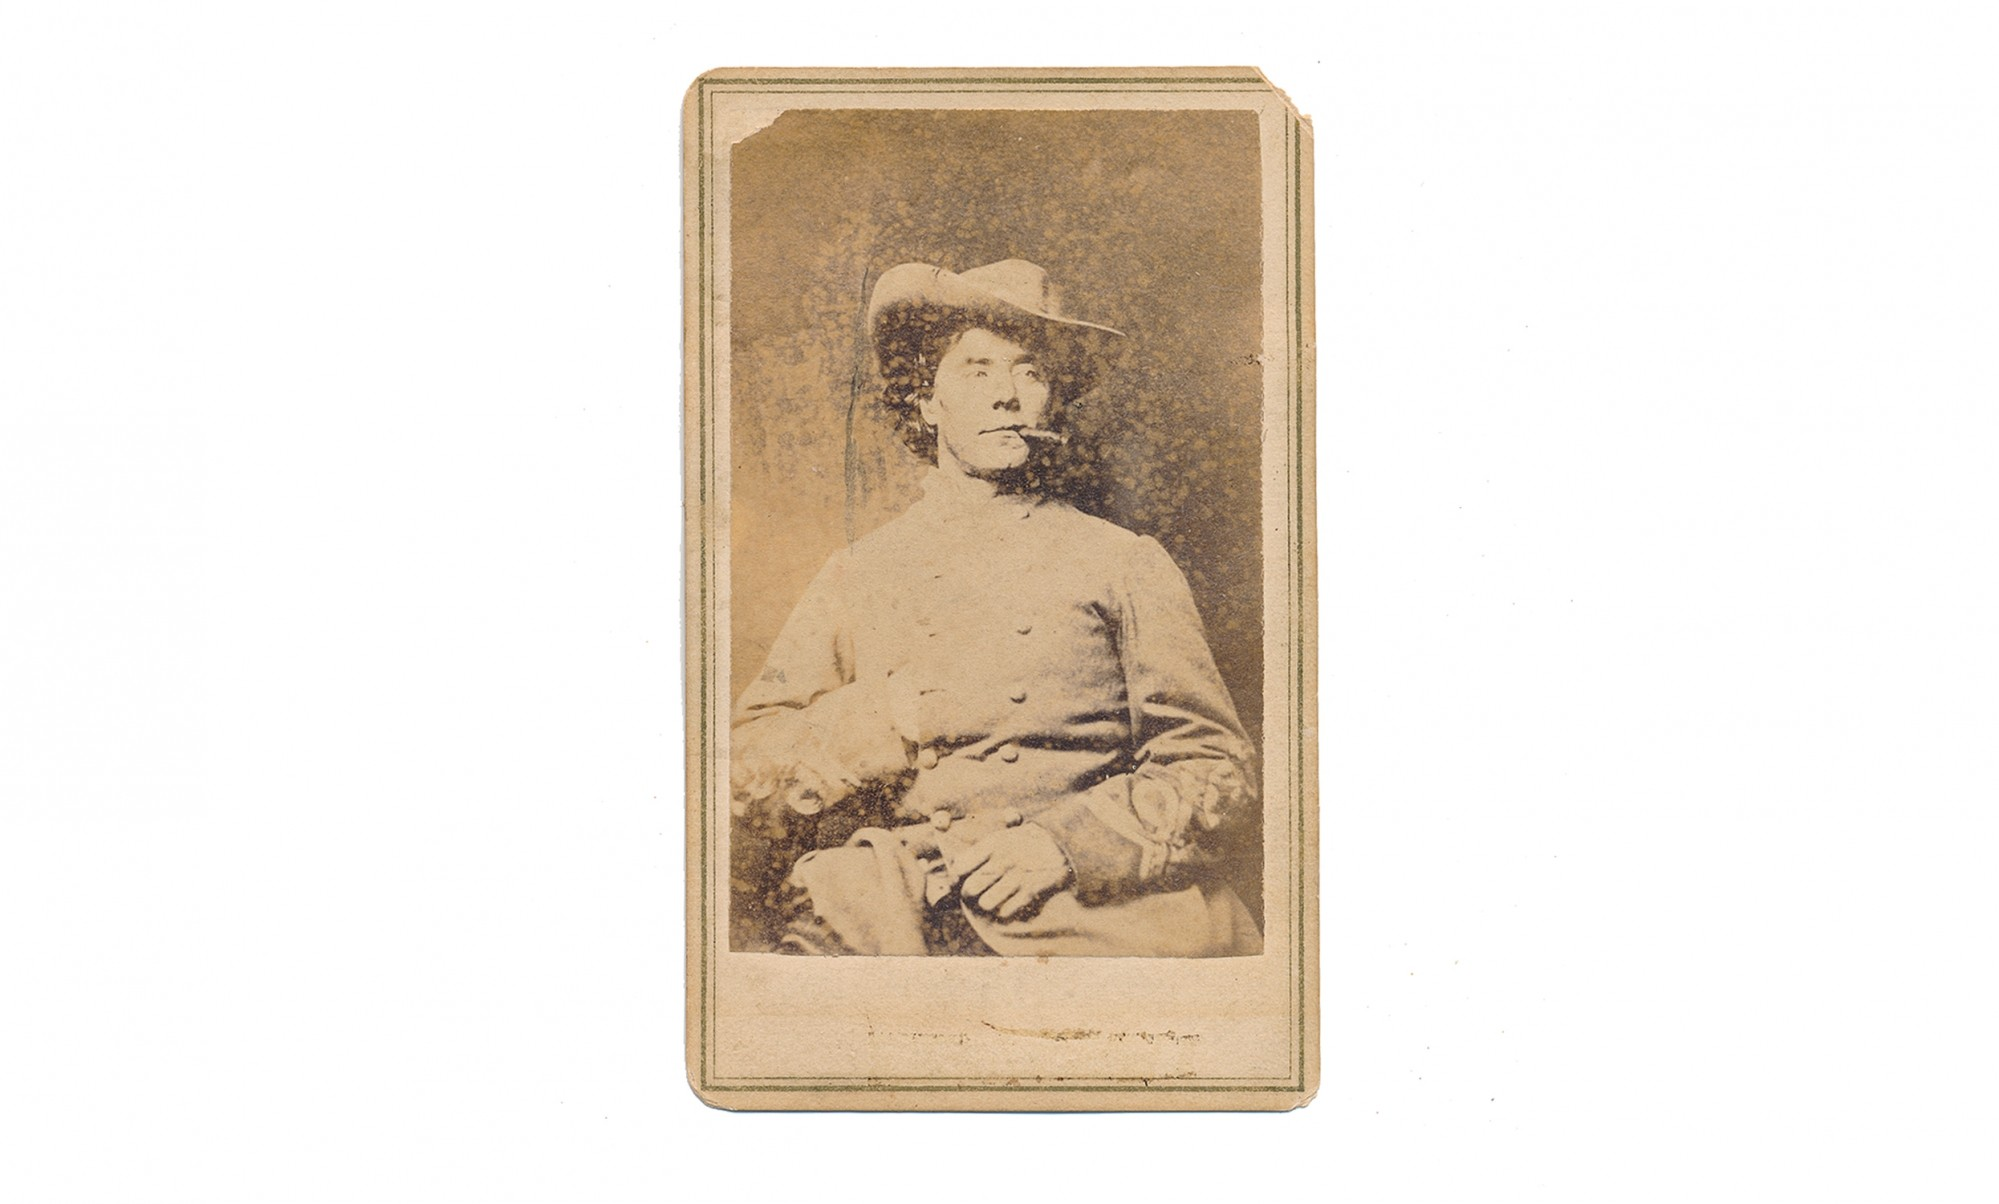 CDV OF WILLIAM S. LAWTON, CS MEDICAL STAFF